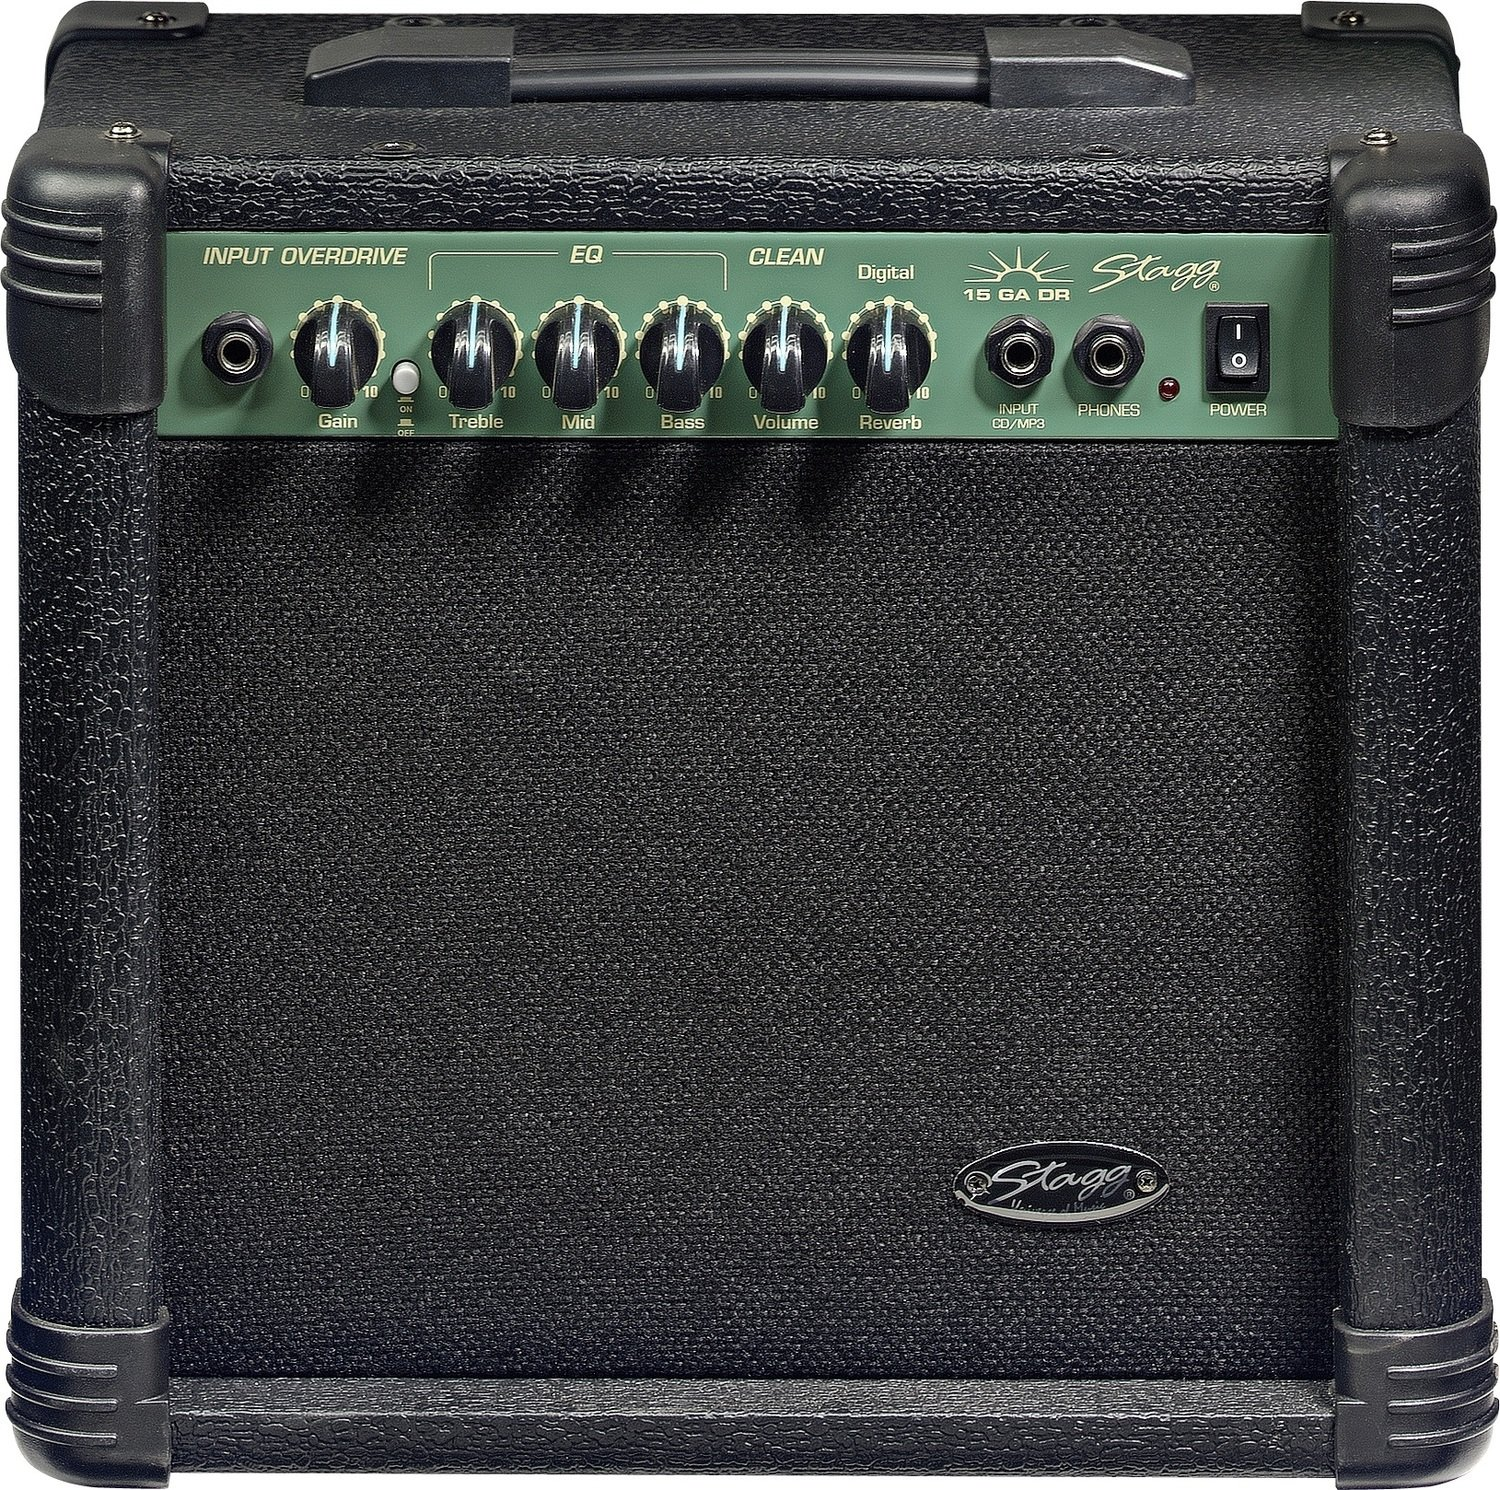 Stagg 15 GA DR - Digital Reverb Electric Guitar Amplifier